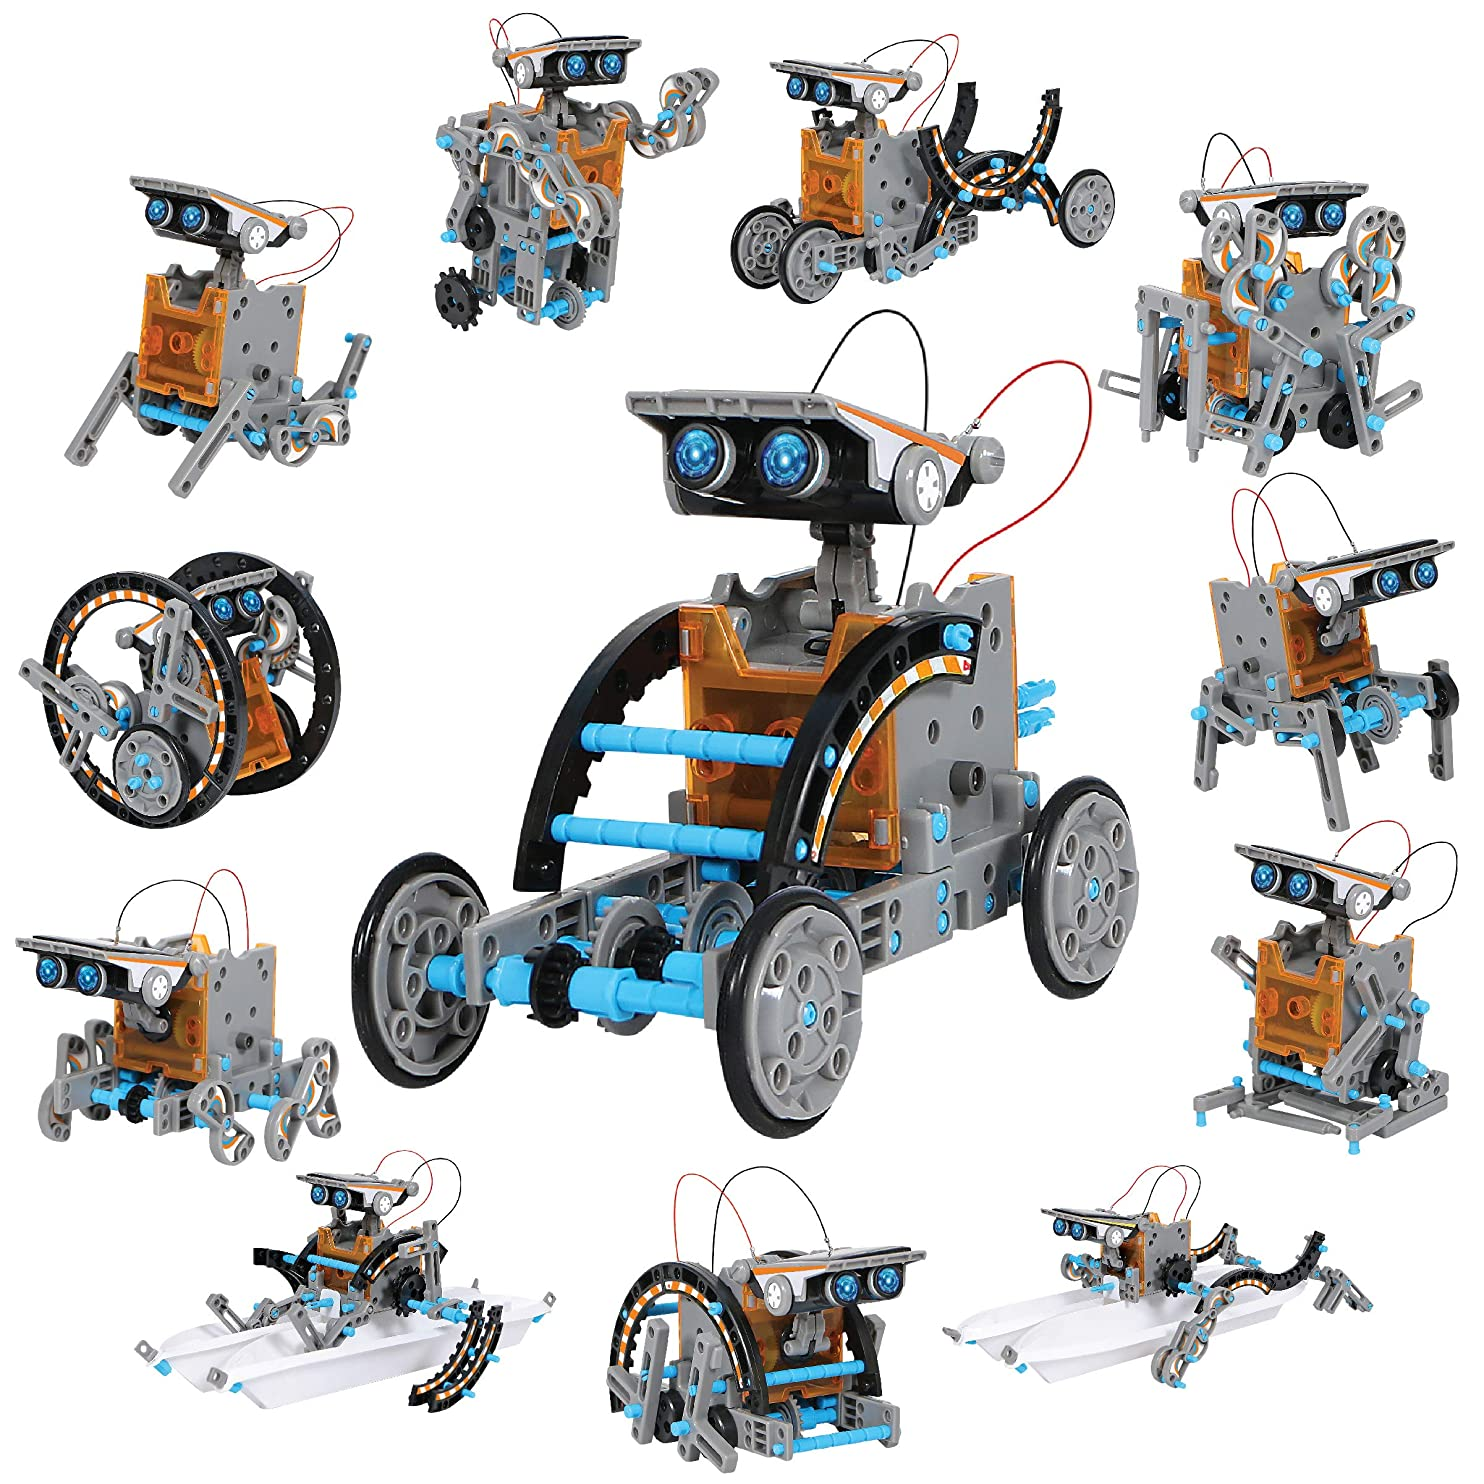 Discovery Kids Mindblown STEM 12-in-1 Solar Robot Creation 190-Piece Kit with Working Solar Powered Motorized Engine and Gears, Construction Engineering Set iwqacqfbbrs59